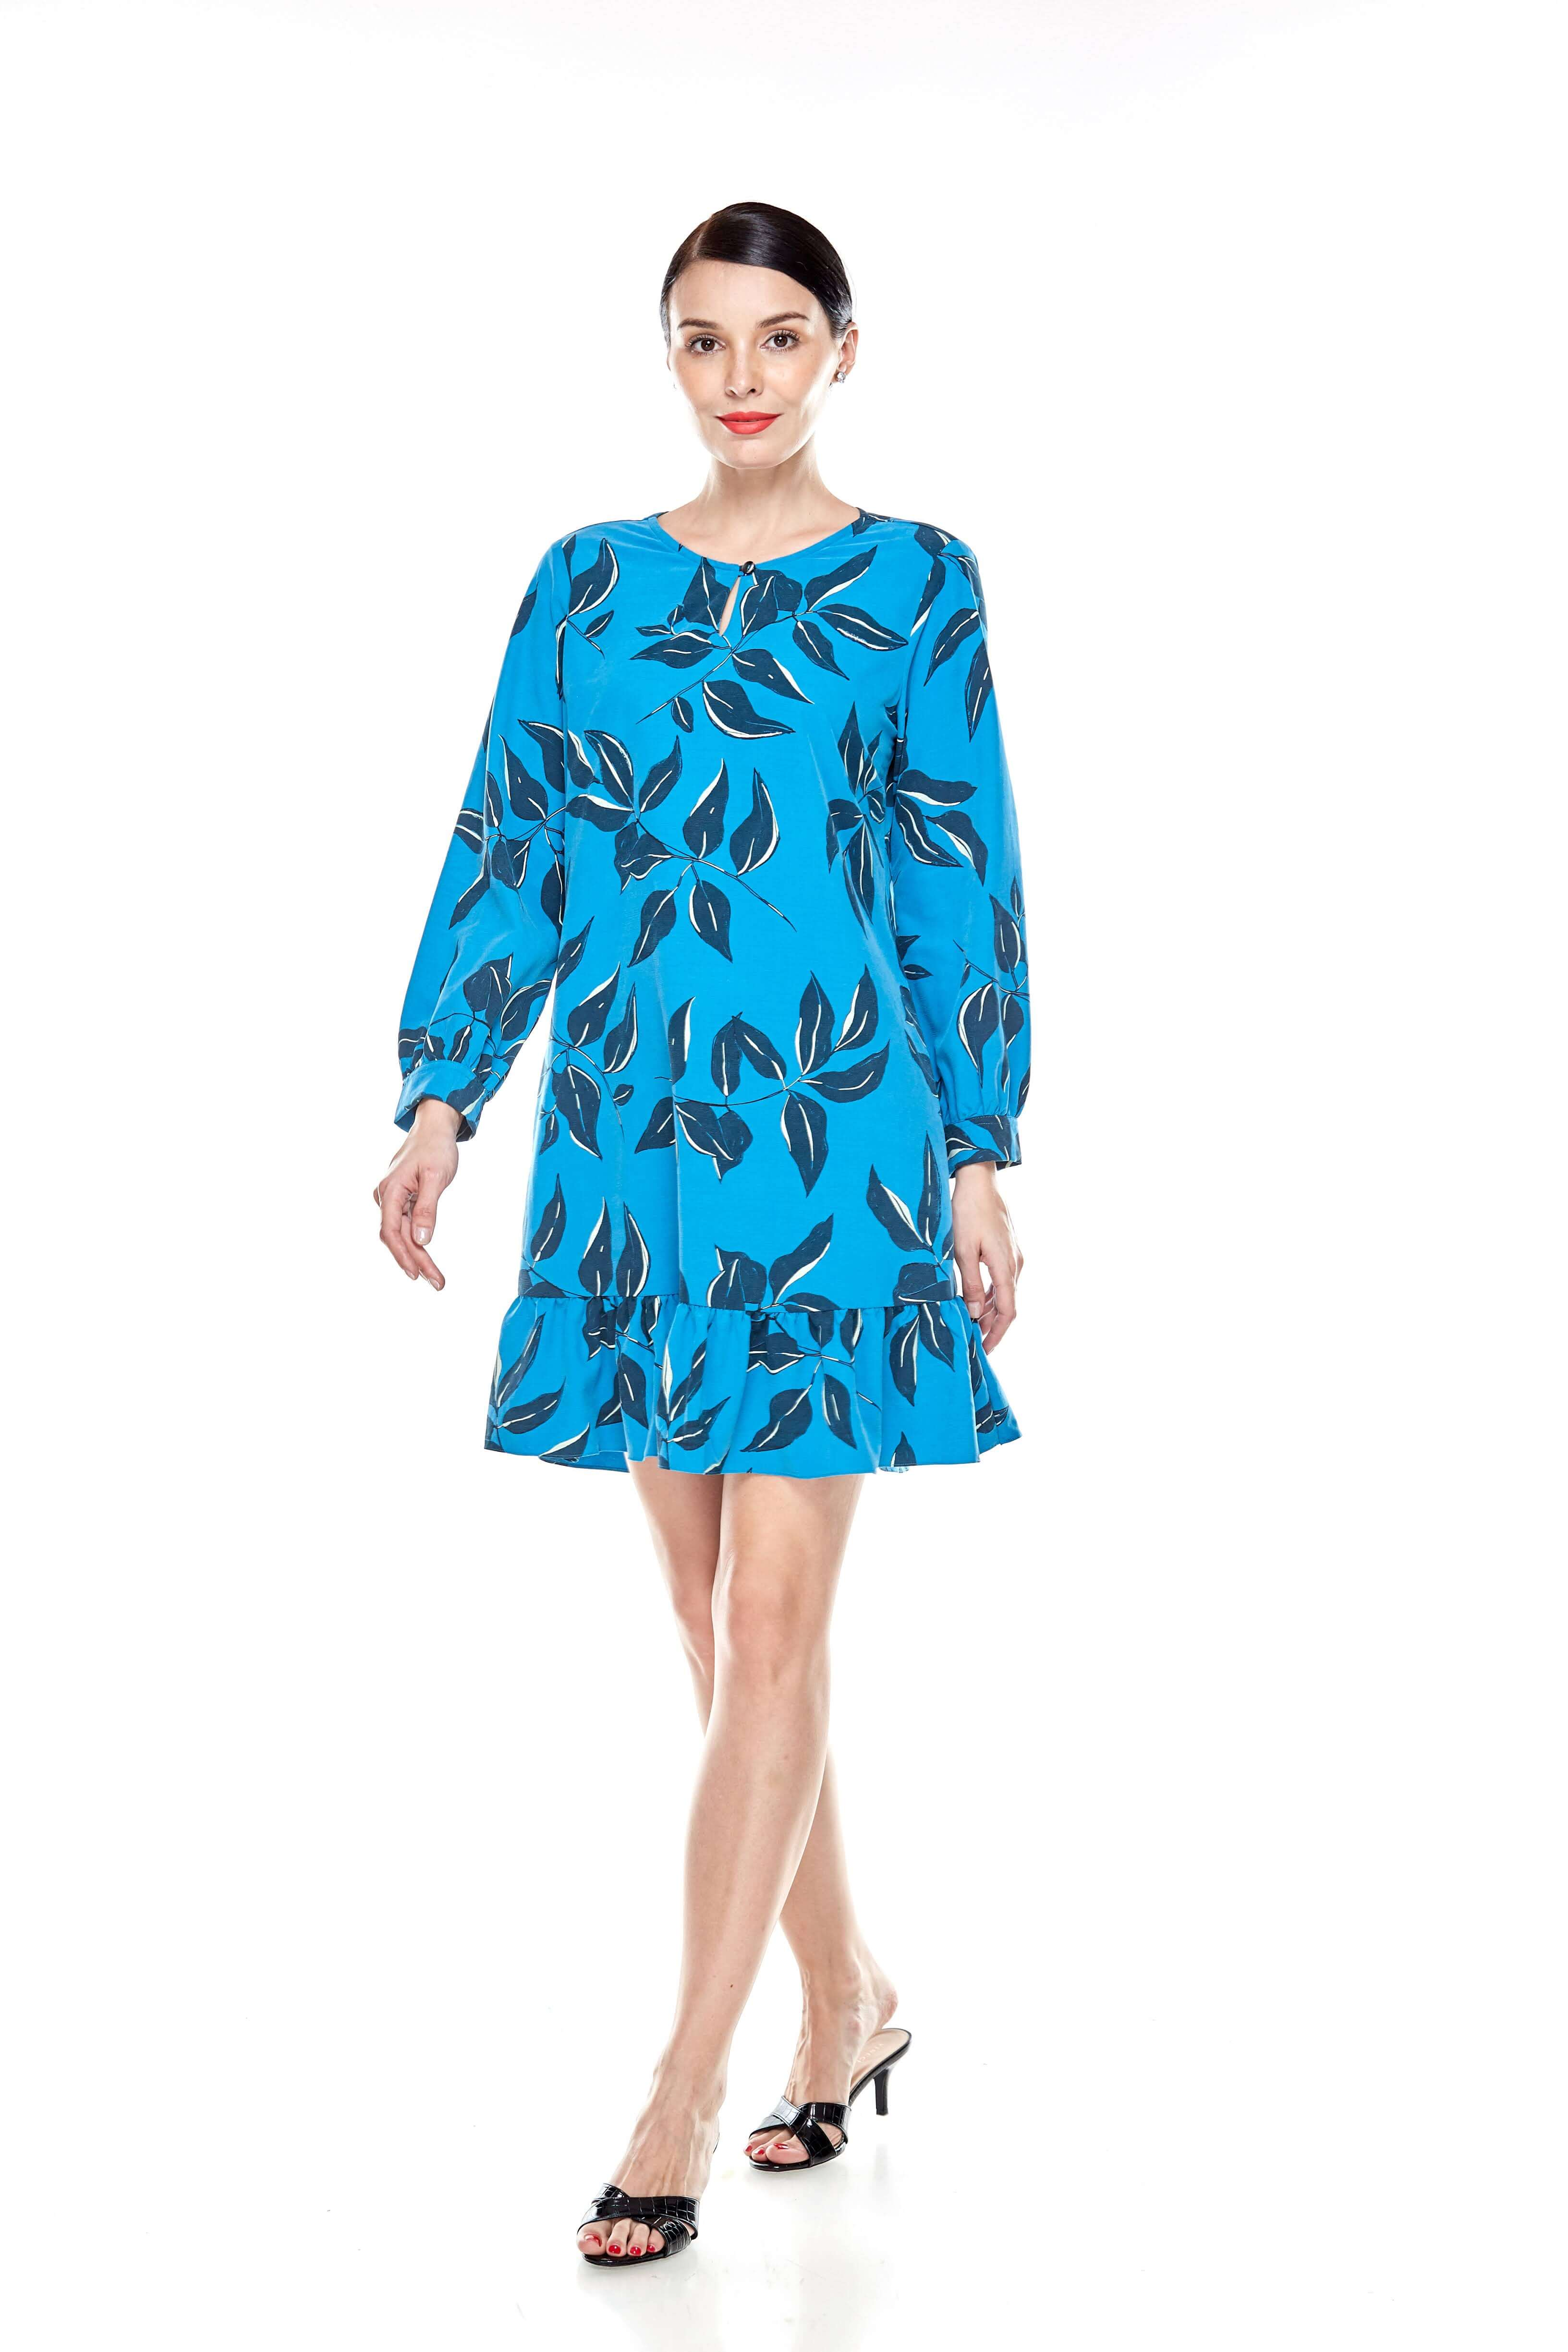 Mosaic Blue Printed Tunic With Bow Sleeves (10)